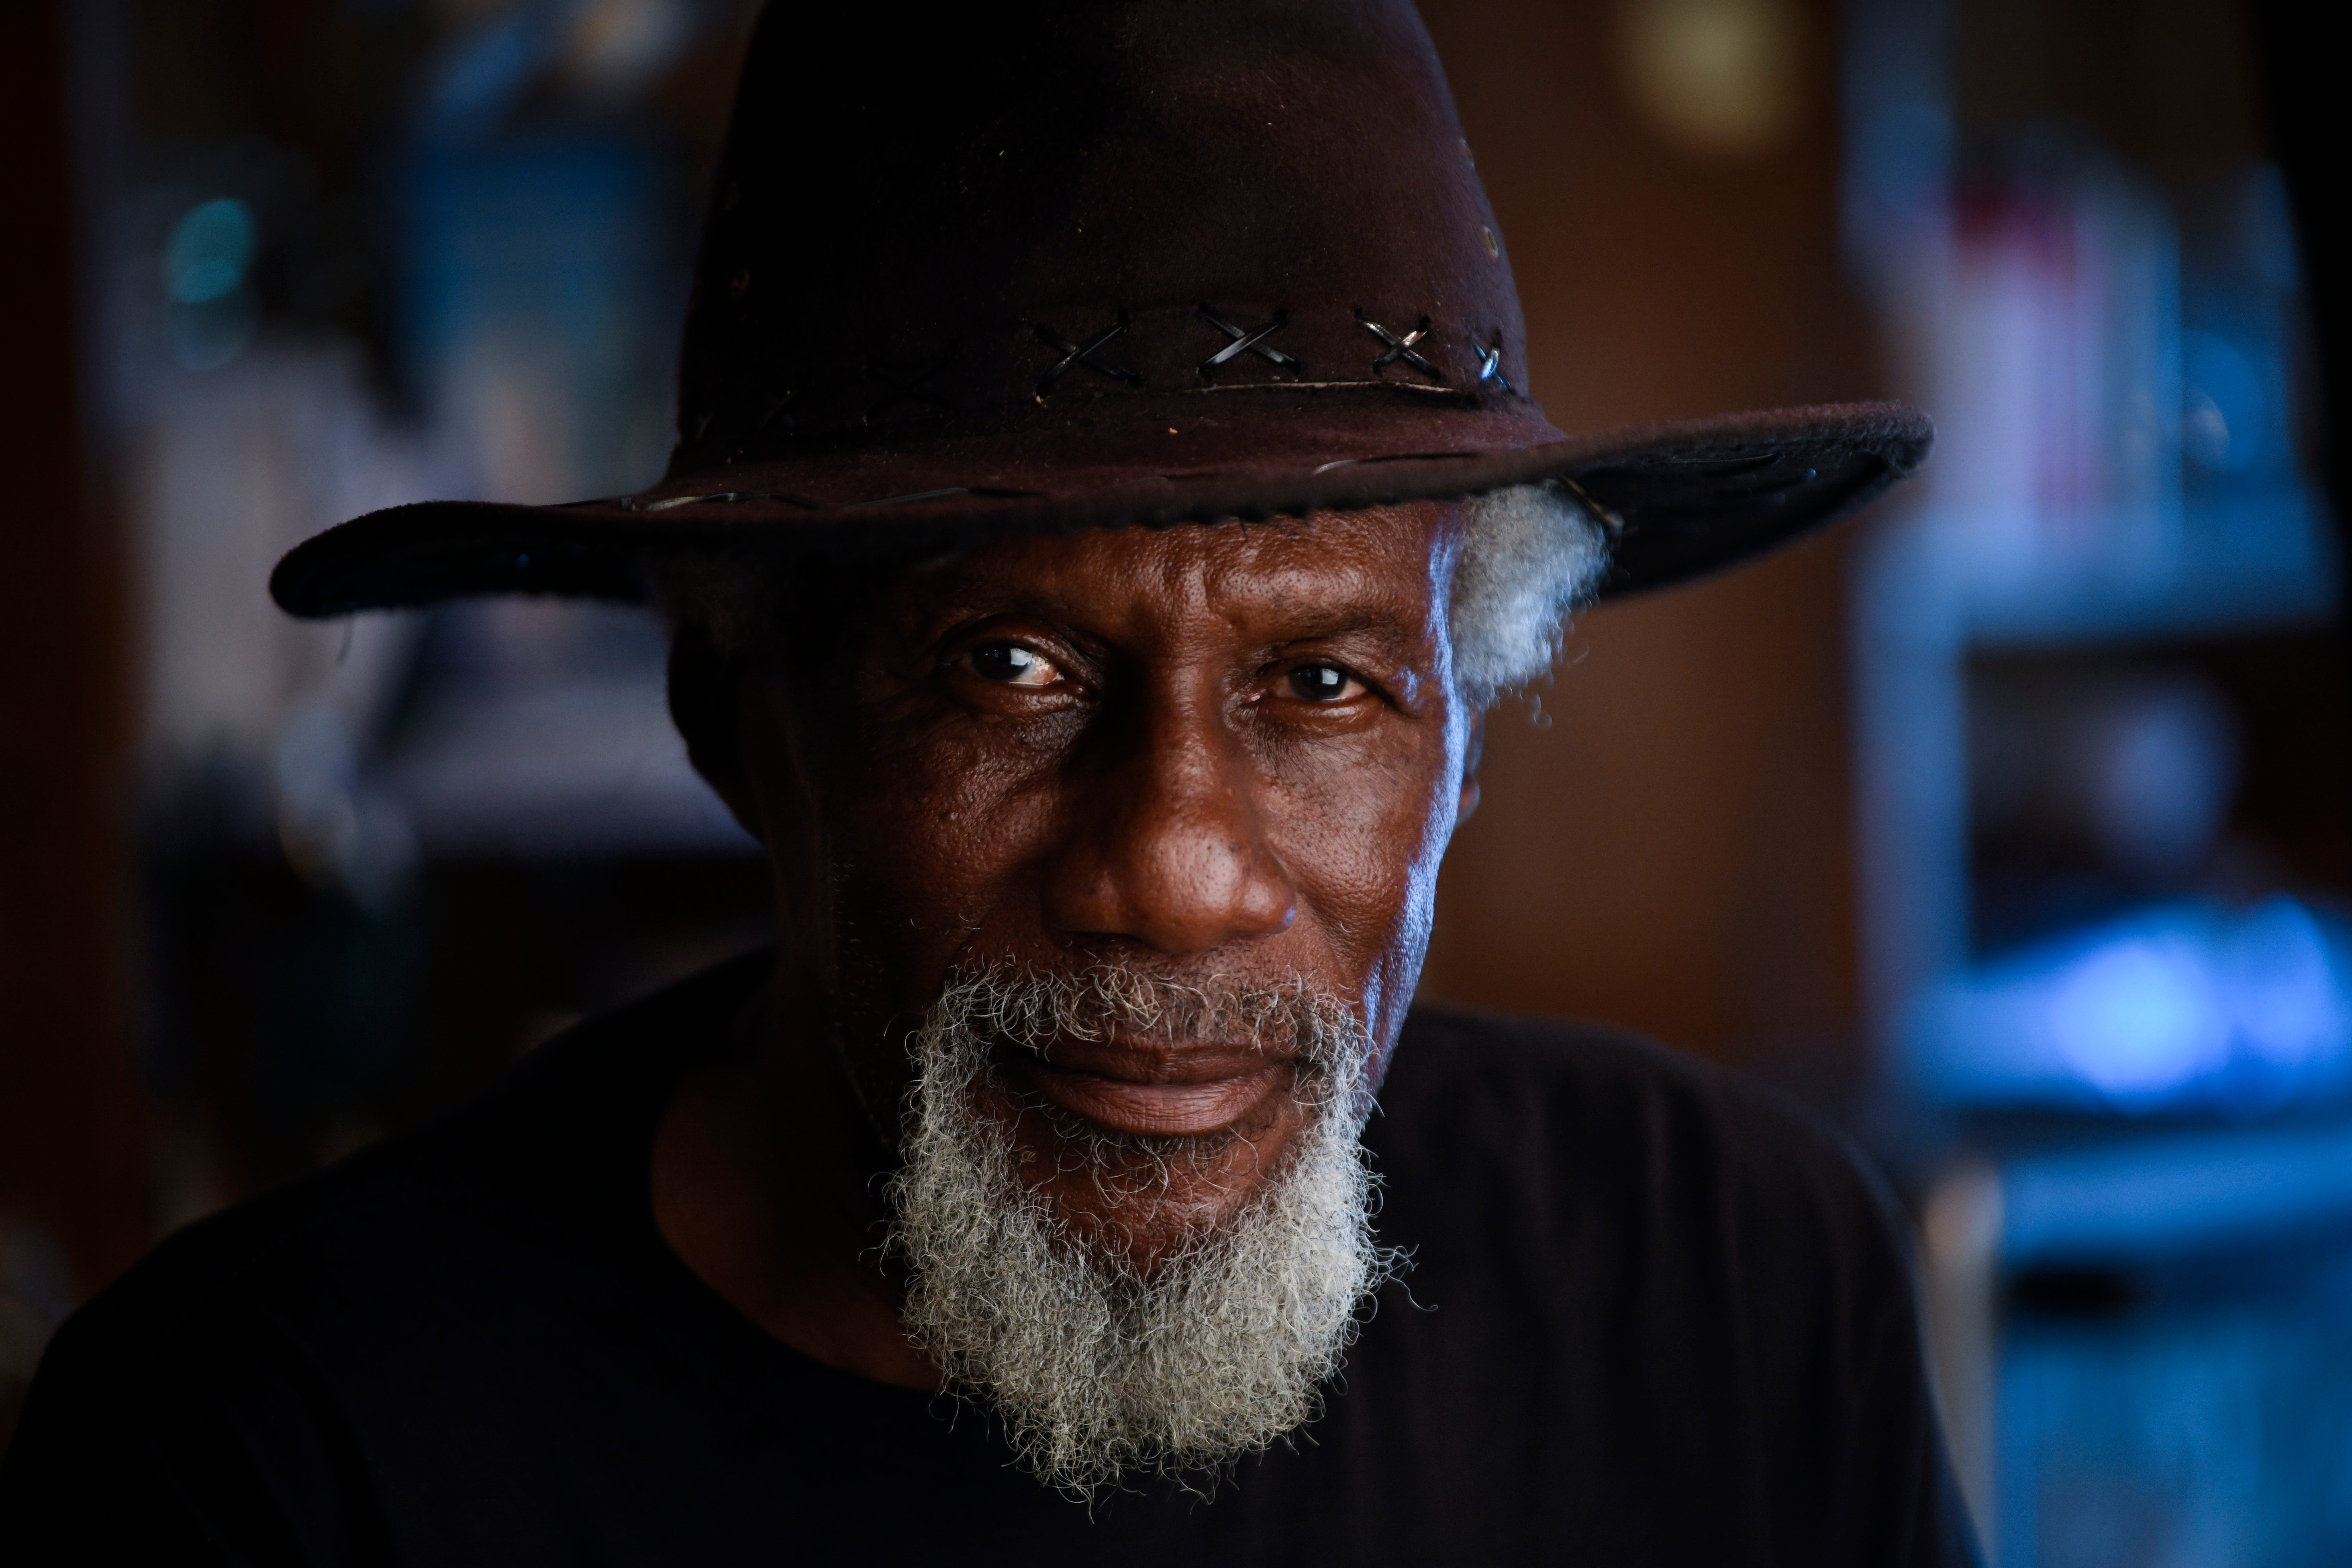 """Robert Finley of Bernice, Louisiana, worked for decades as a carpenter, singing on the side, before a chance discovery led him to Nashville. Now he's ascended to overdue heights, and he's telling his story """"from the cotton fields to Beverly Hills."""" He's shown  July 16, 2021."""